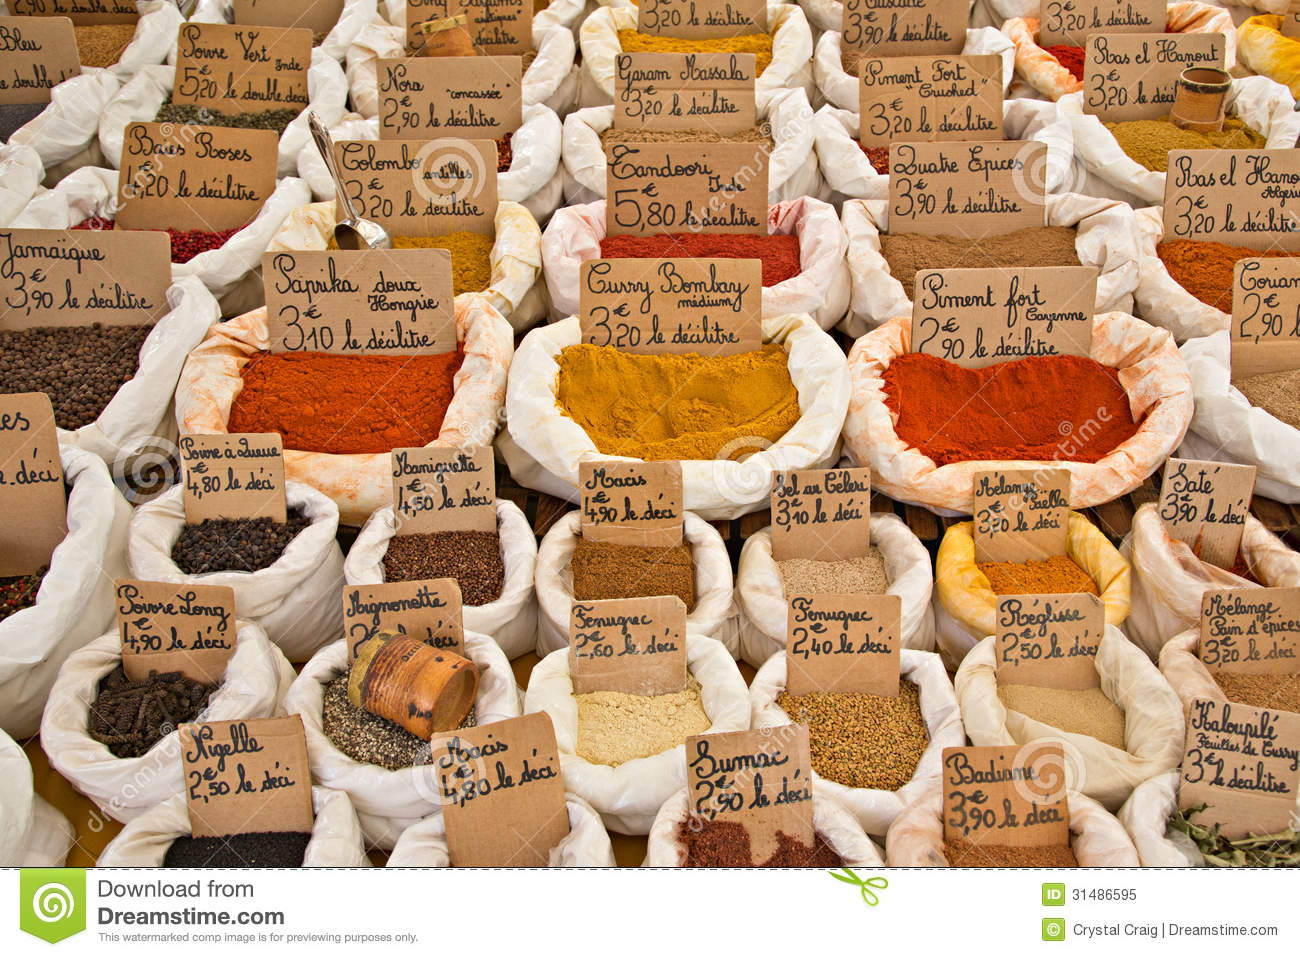 French Market Spices in bags